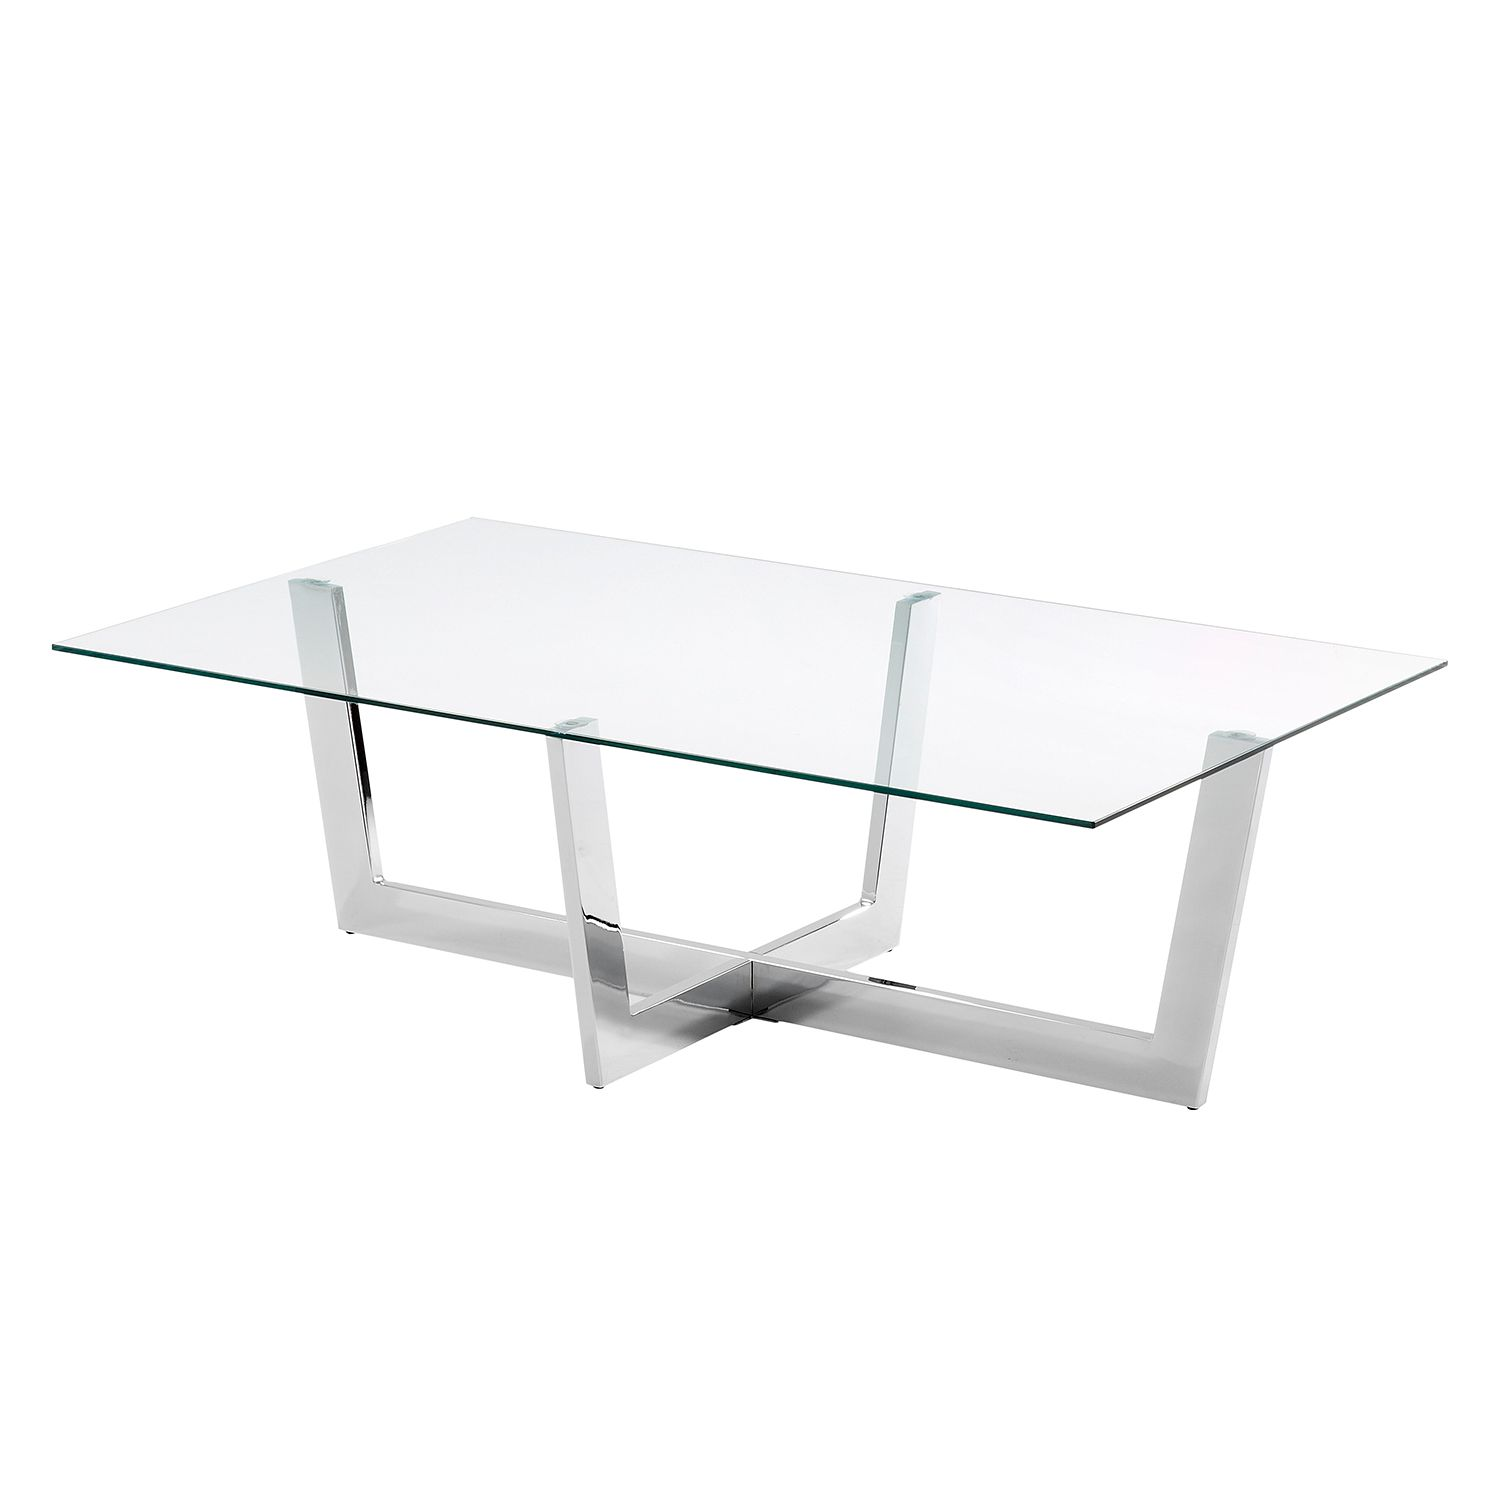 Table basse Forres